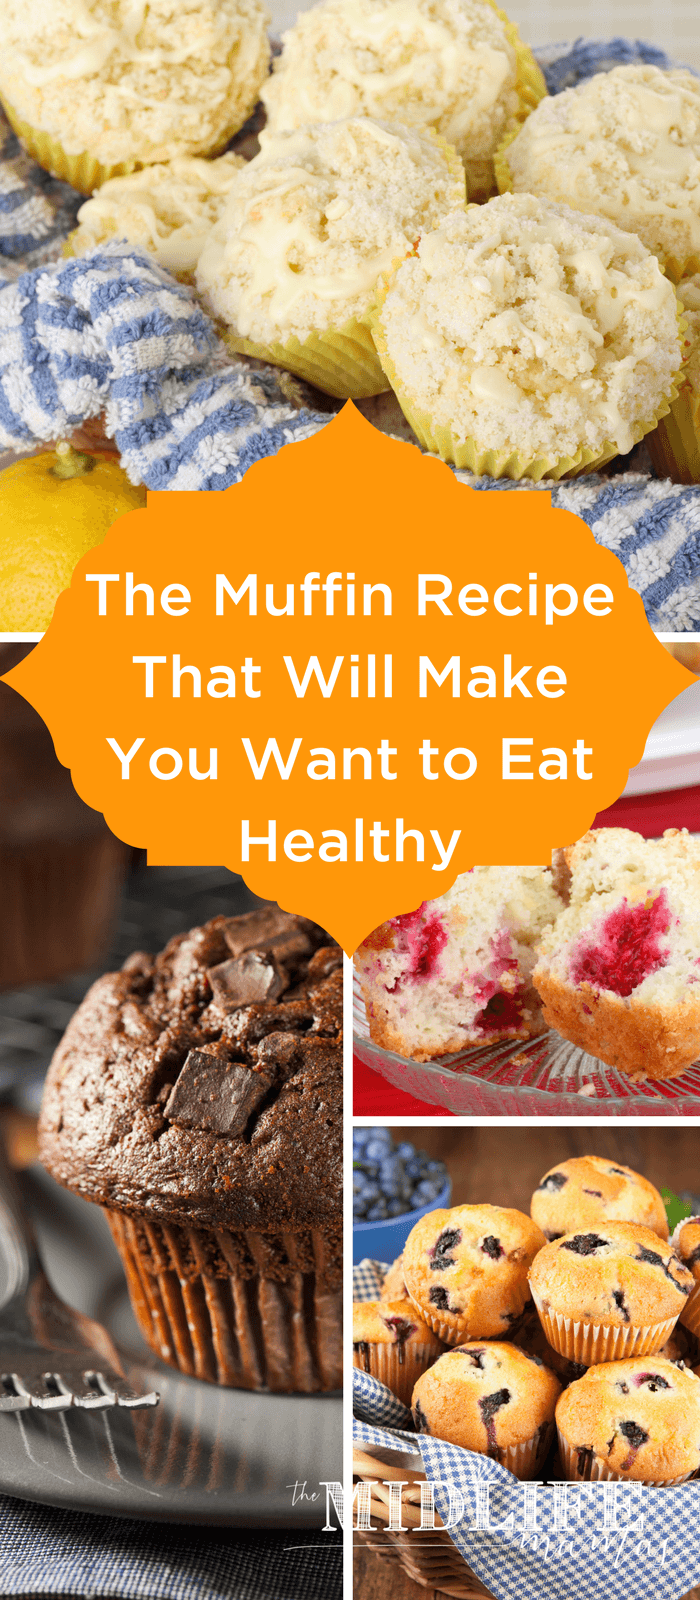 My kids love this easy healthy muffin recipe for snacks, lunches, or breakfasts on the go. They are clean eating at its finest and they are gluten-free including banana, flax, chia and oats. Bonus: many are allergen free or allergen free optional! #healthymuffin #allergenfree #glutenfree #muffin www.themidlifemamas.com